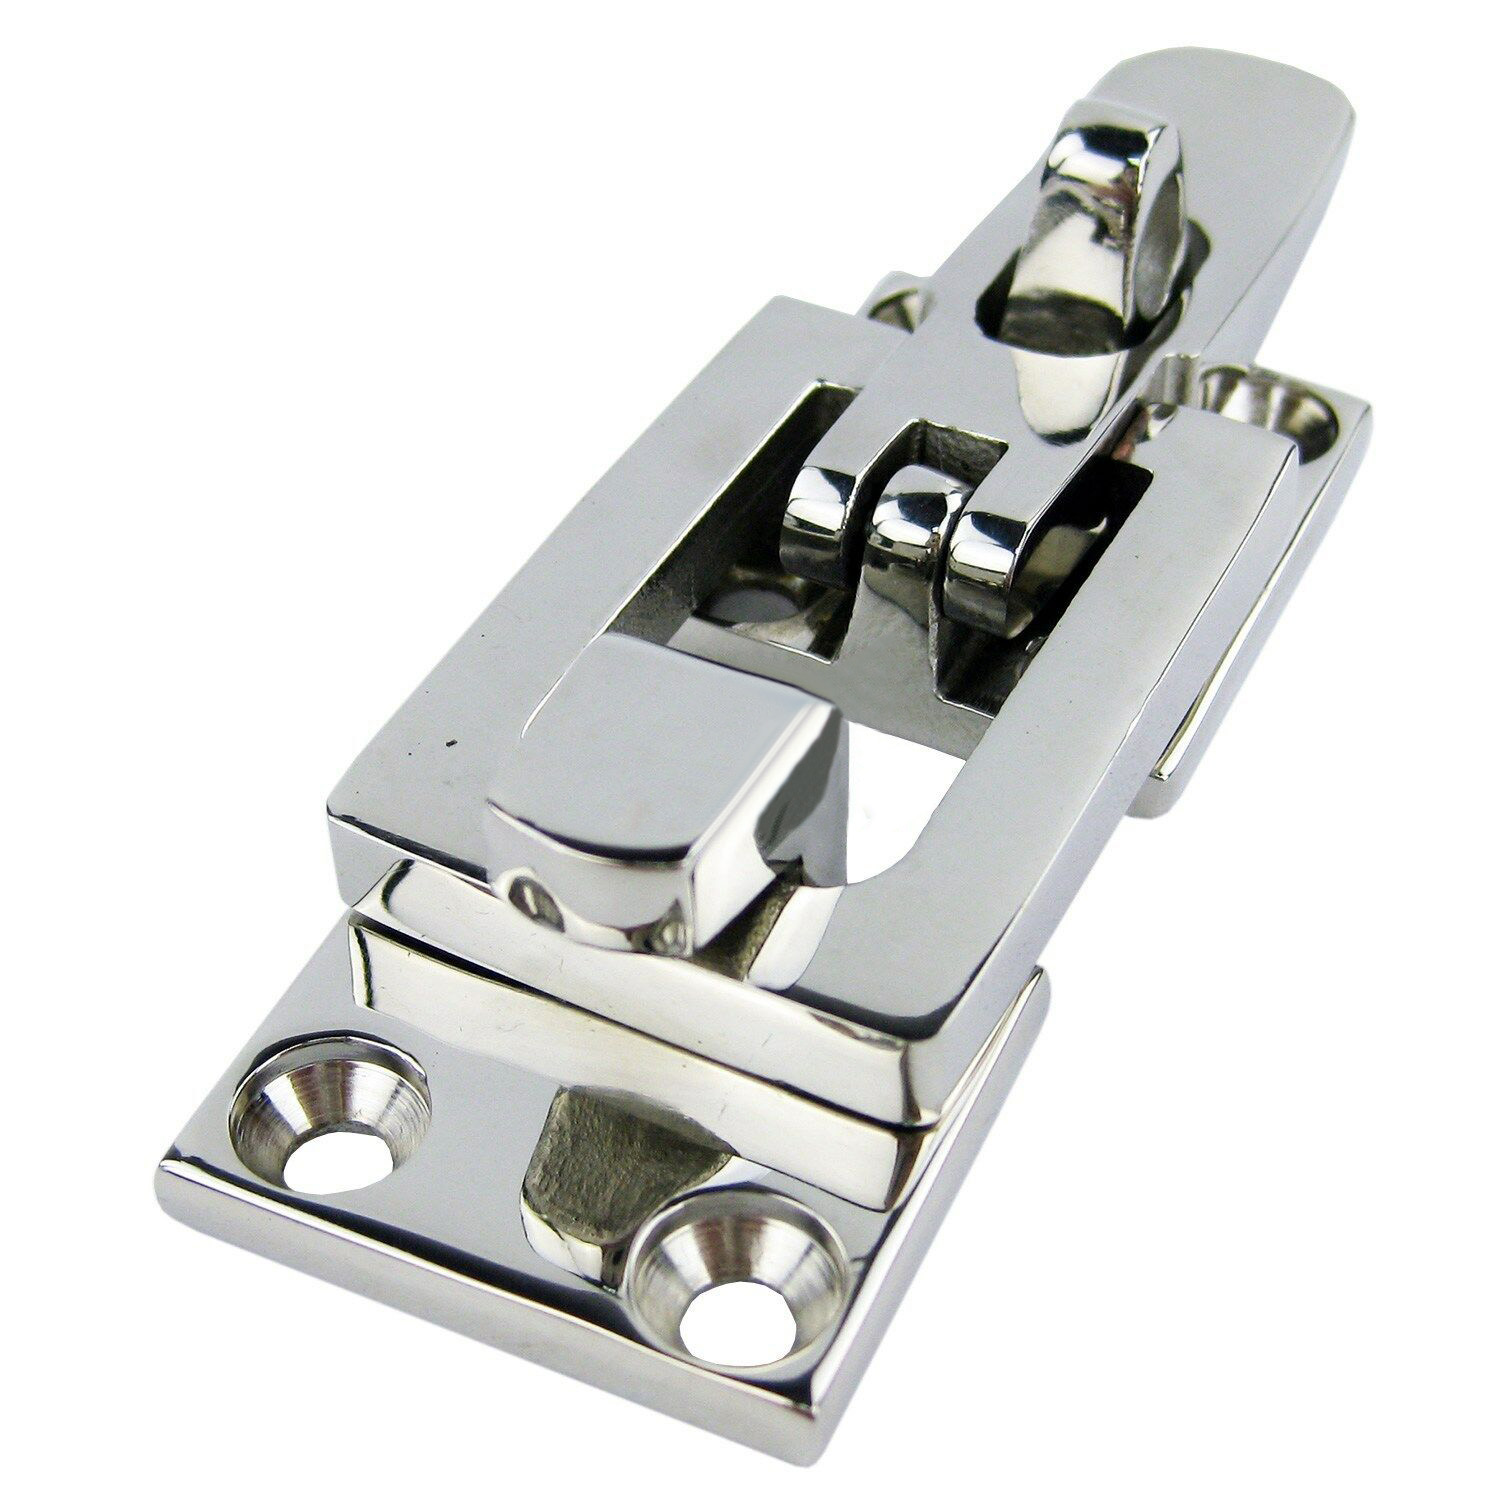 70mm*28mm 1pcs Stainless Steel Anti-Rattle Latch Boat Locker Hatch Heavy Marine Fastener Clamp New Professional Marine Hardware